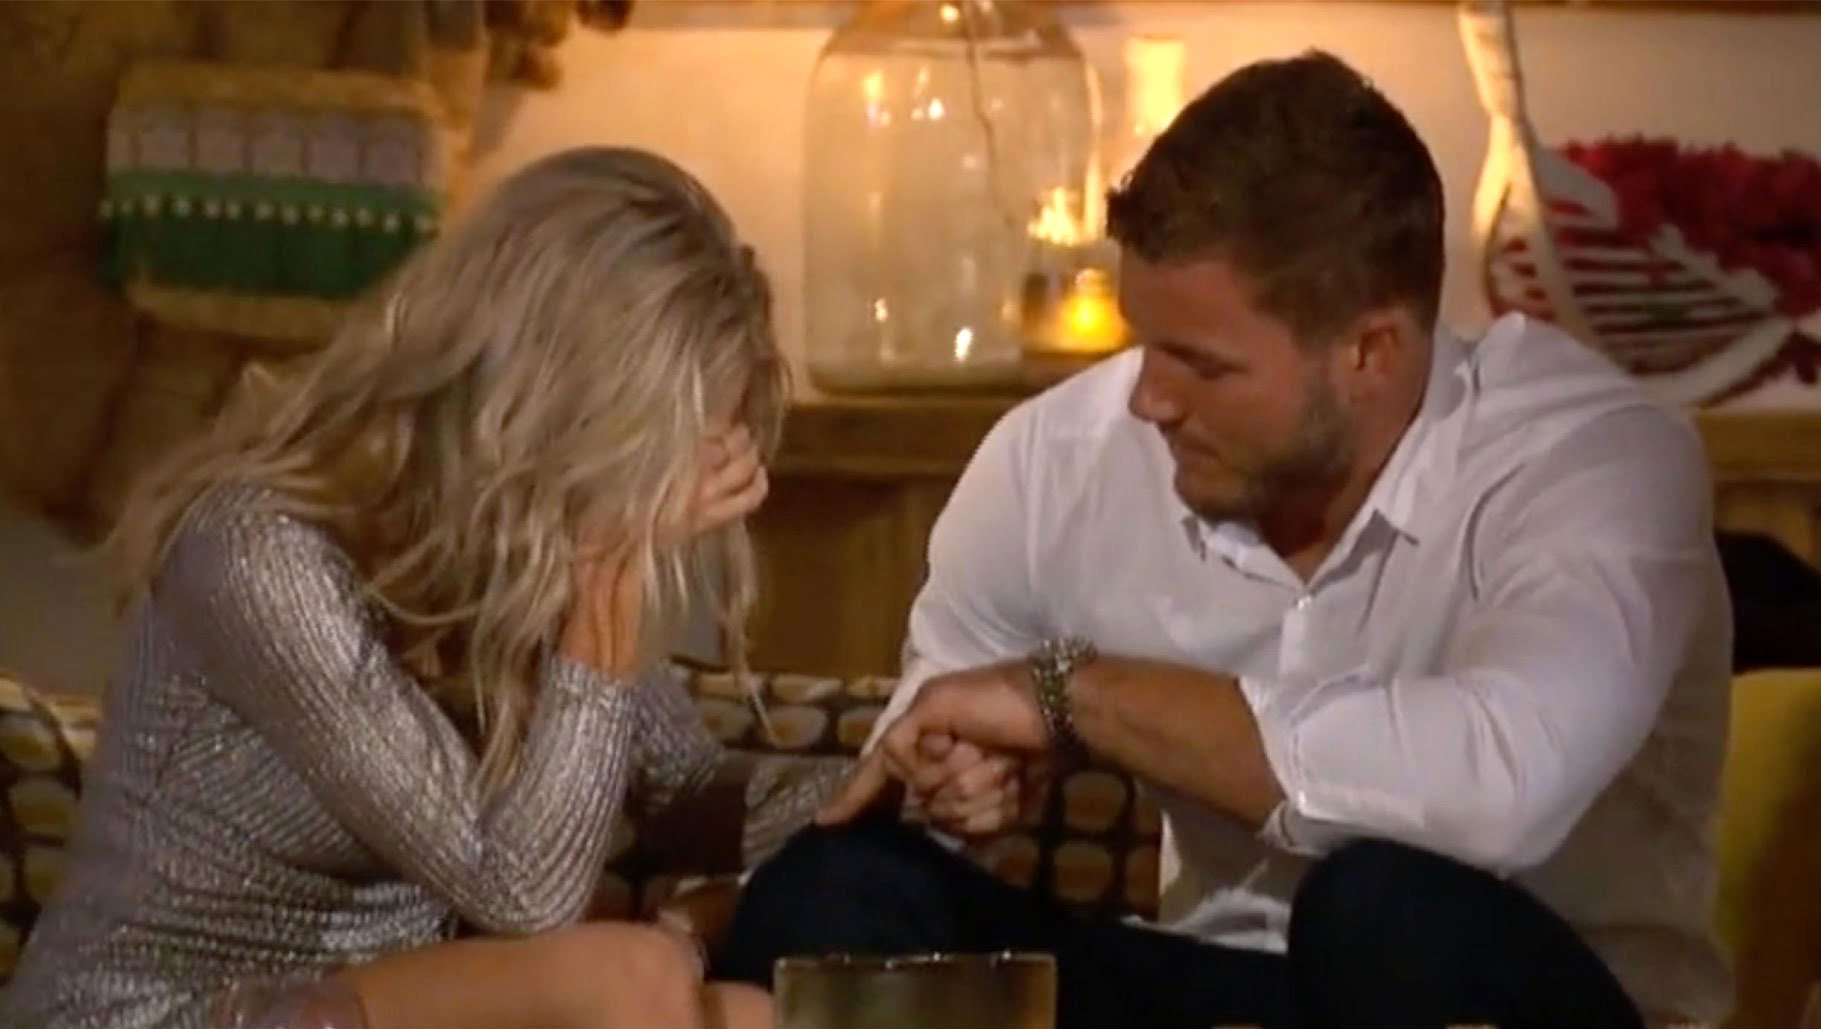 Cassie Tells Colton She's Not in Love, Quits the Show